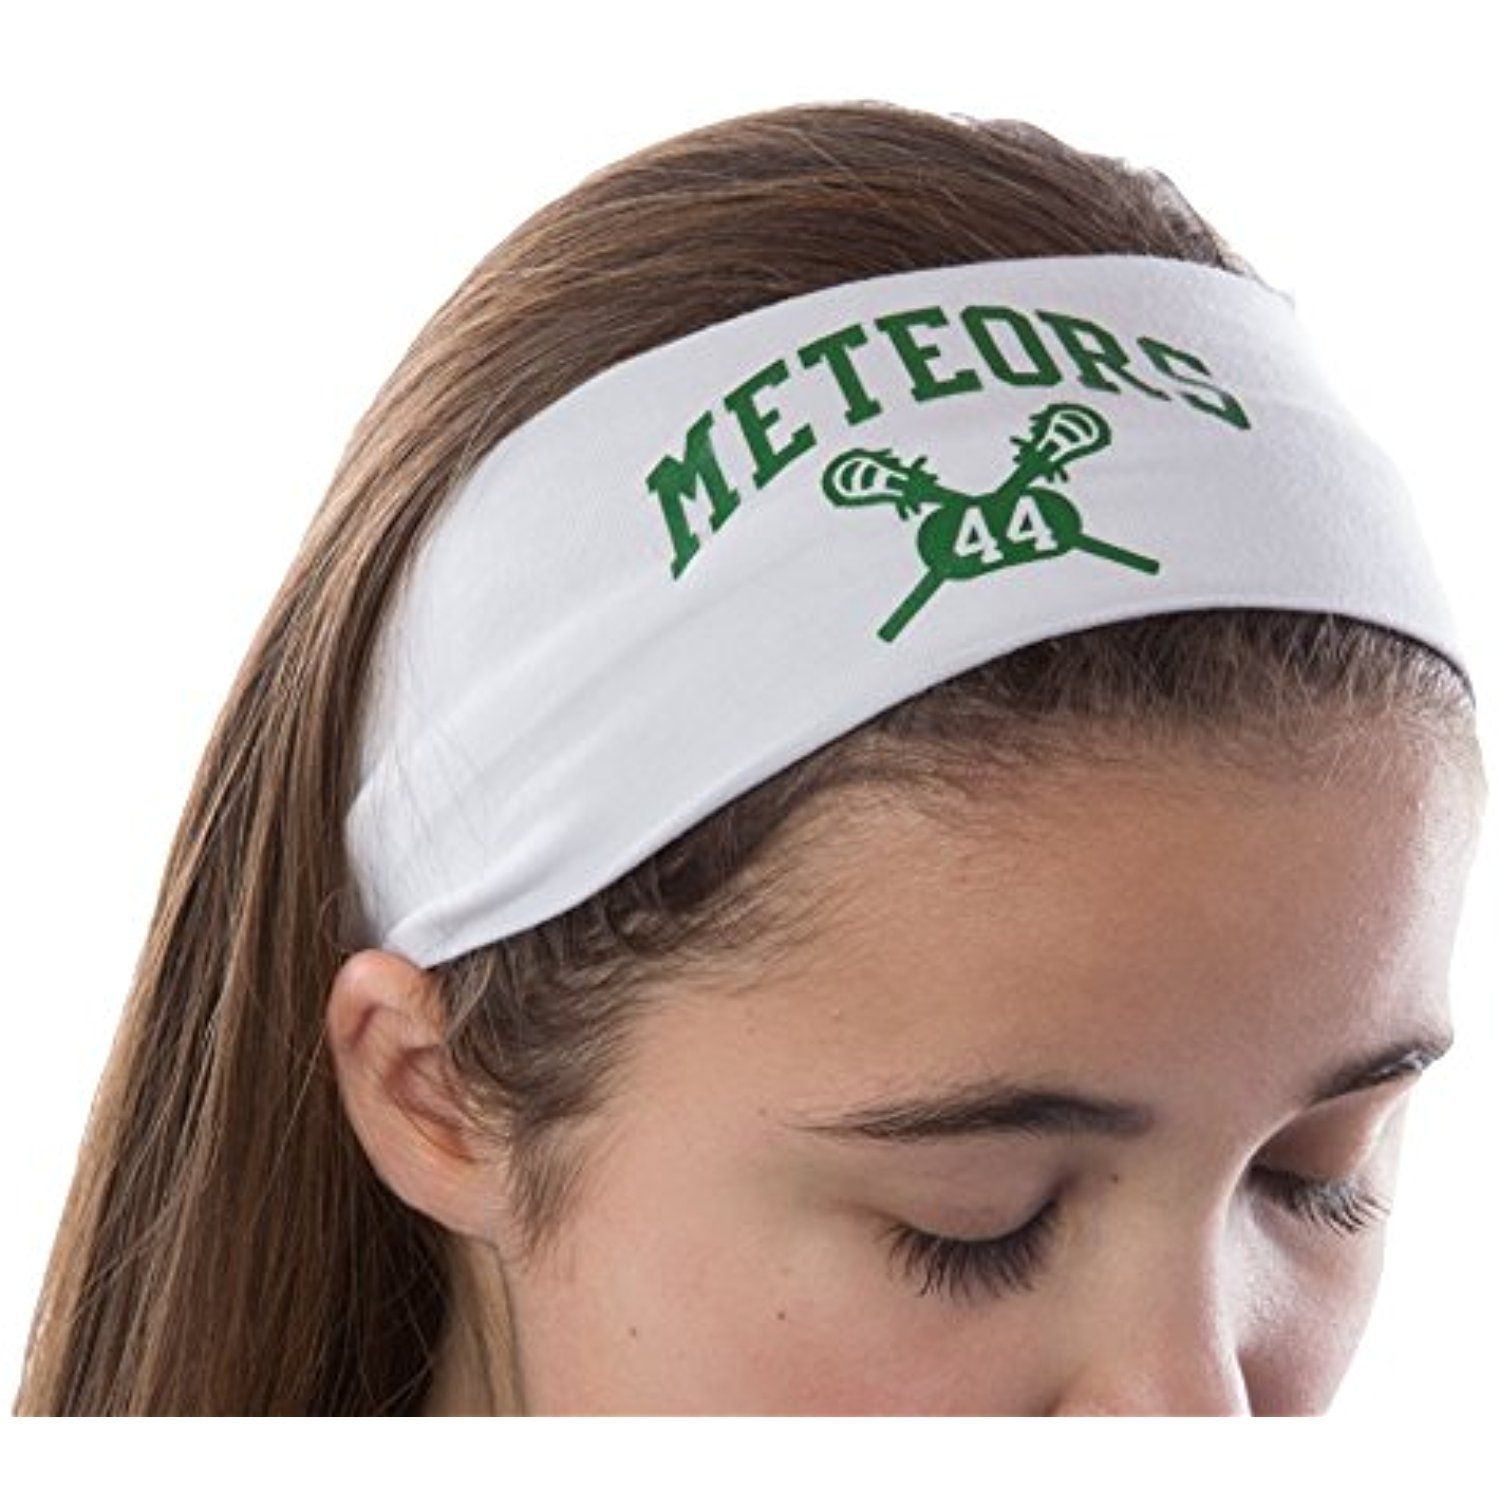 Design Your Own Personalized Lacrosse Cotton Stretch Headband With